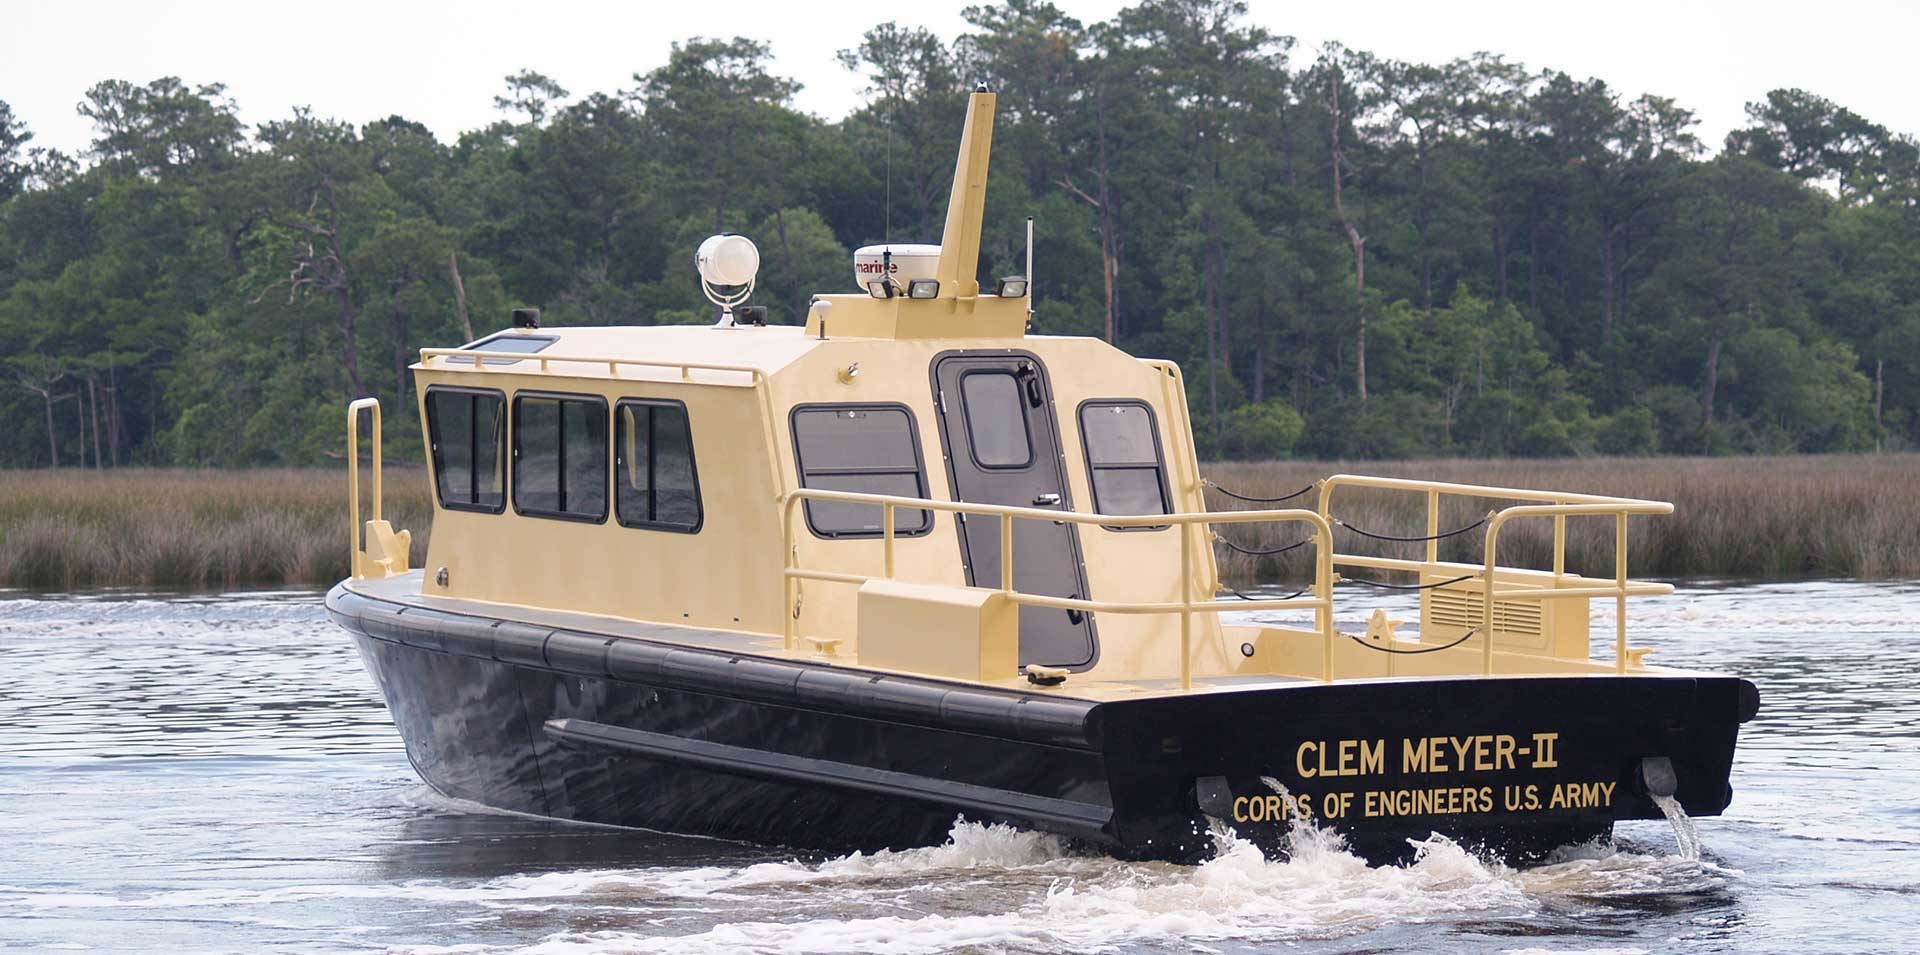 Silver Ships Endeavor Series survey boat for Army Corps of Engineers